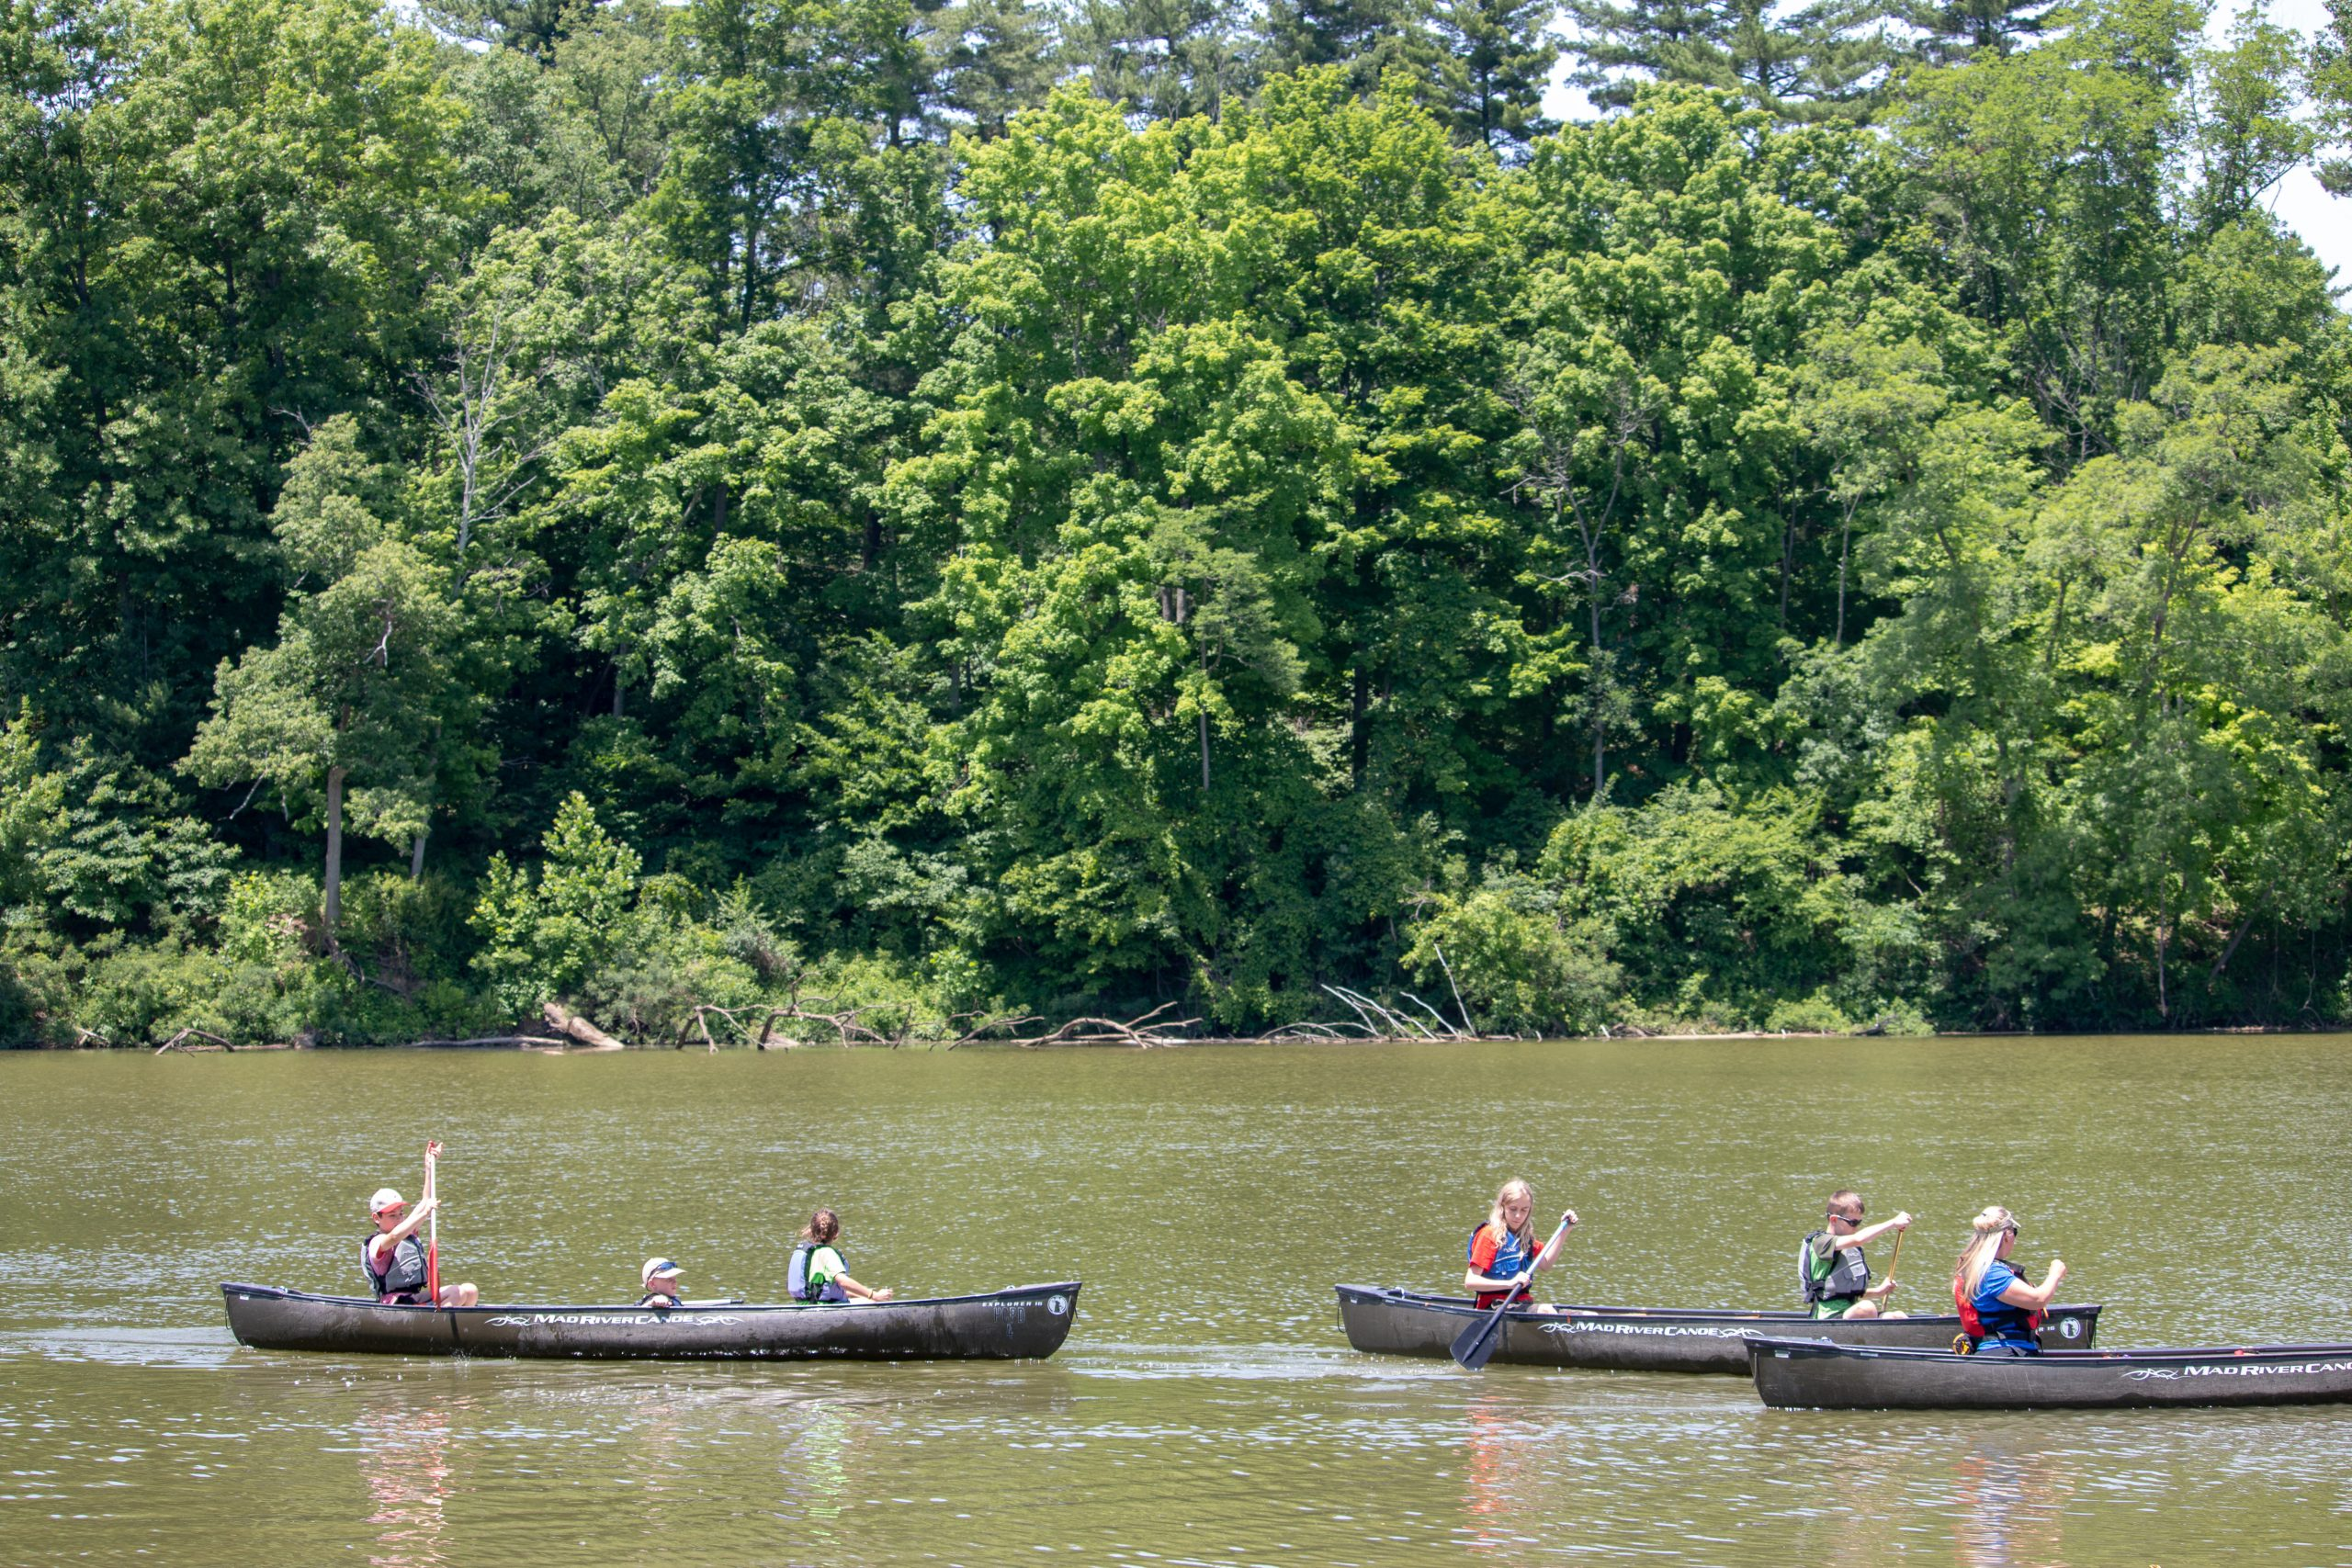 A group of people canoe on a lake on a sunny summer day.